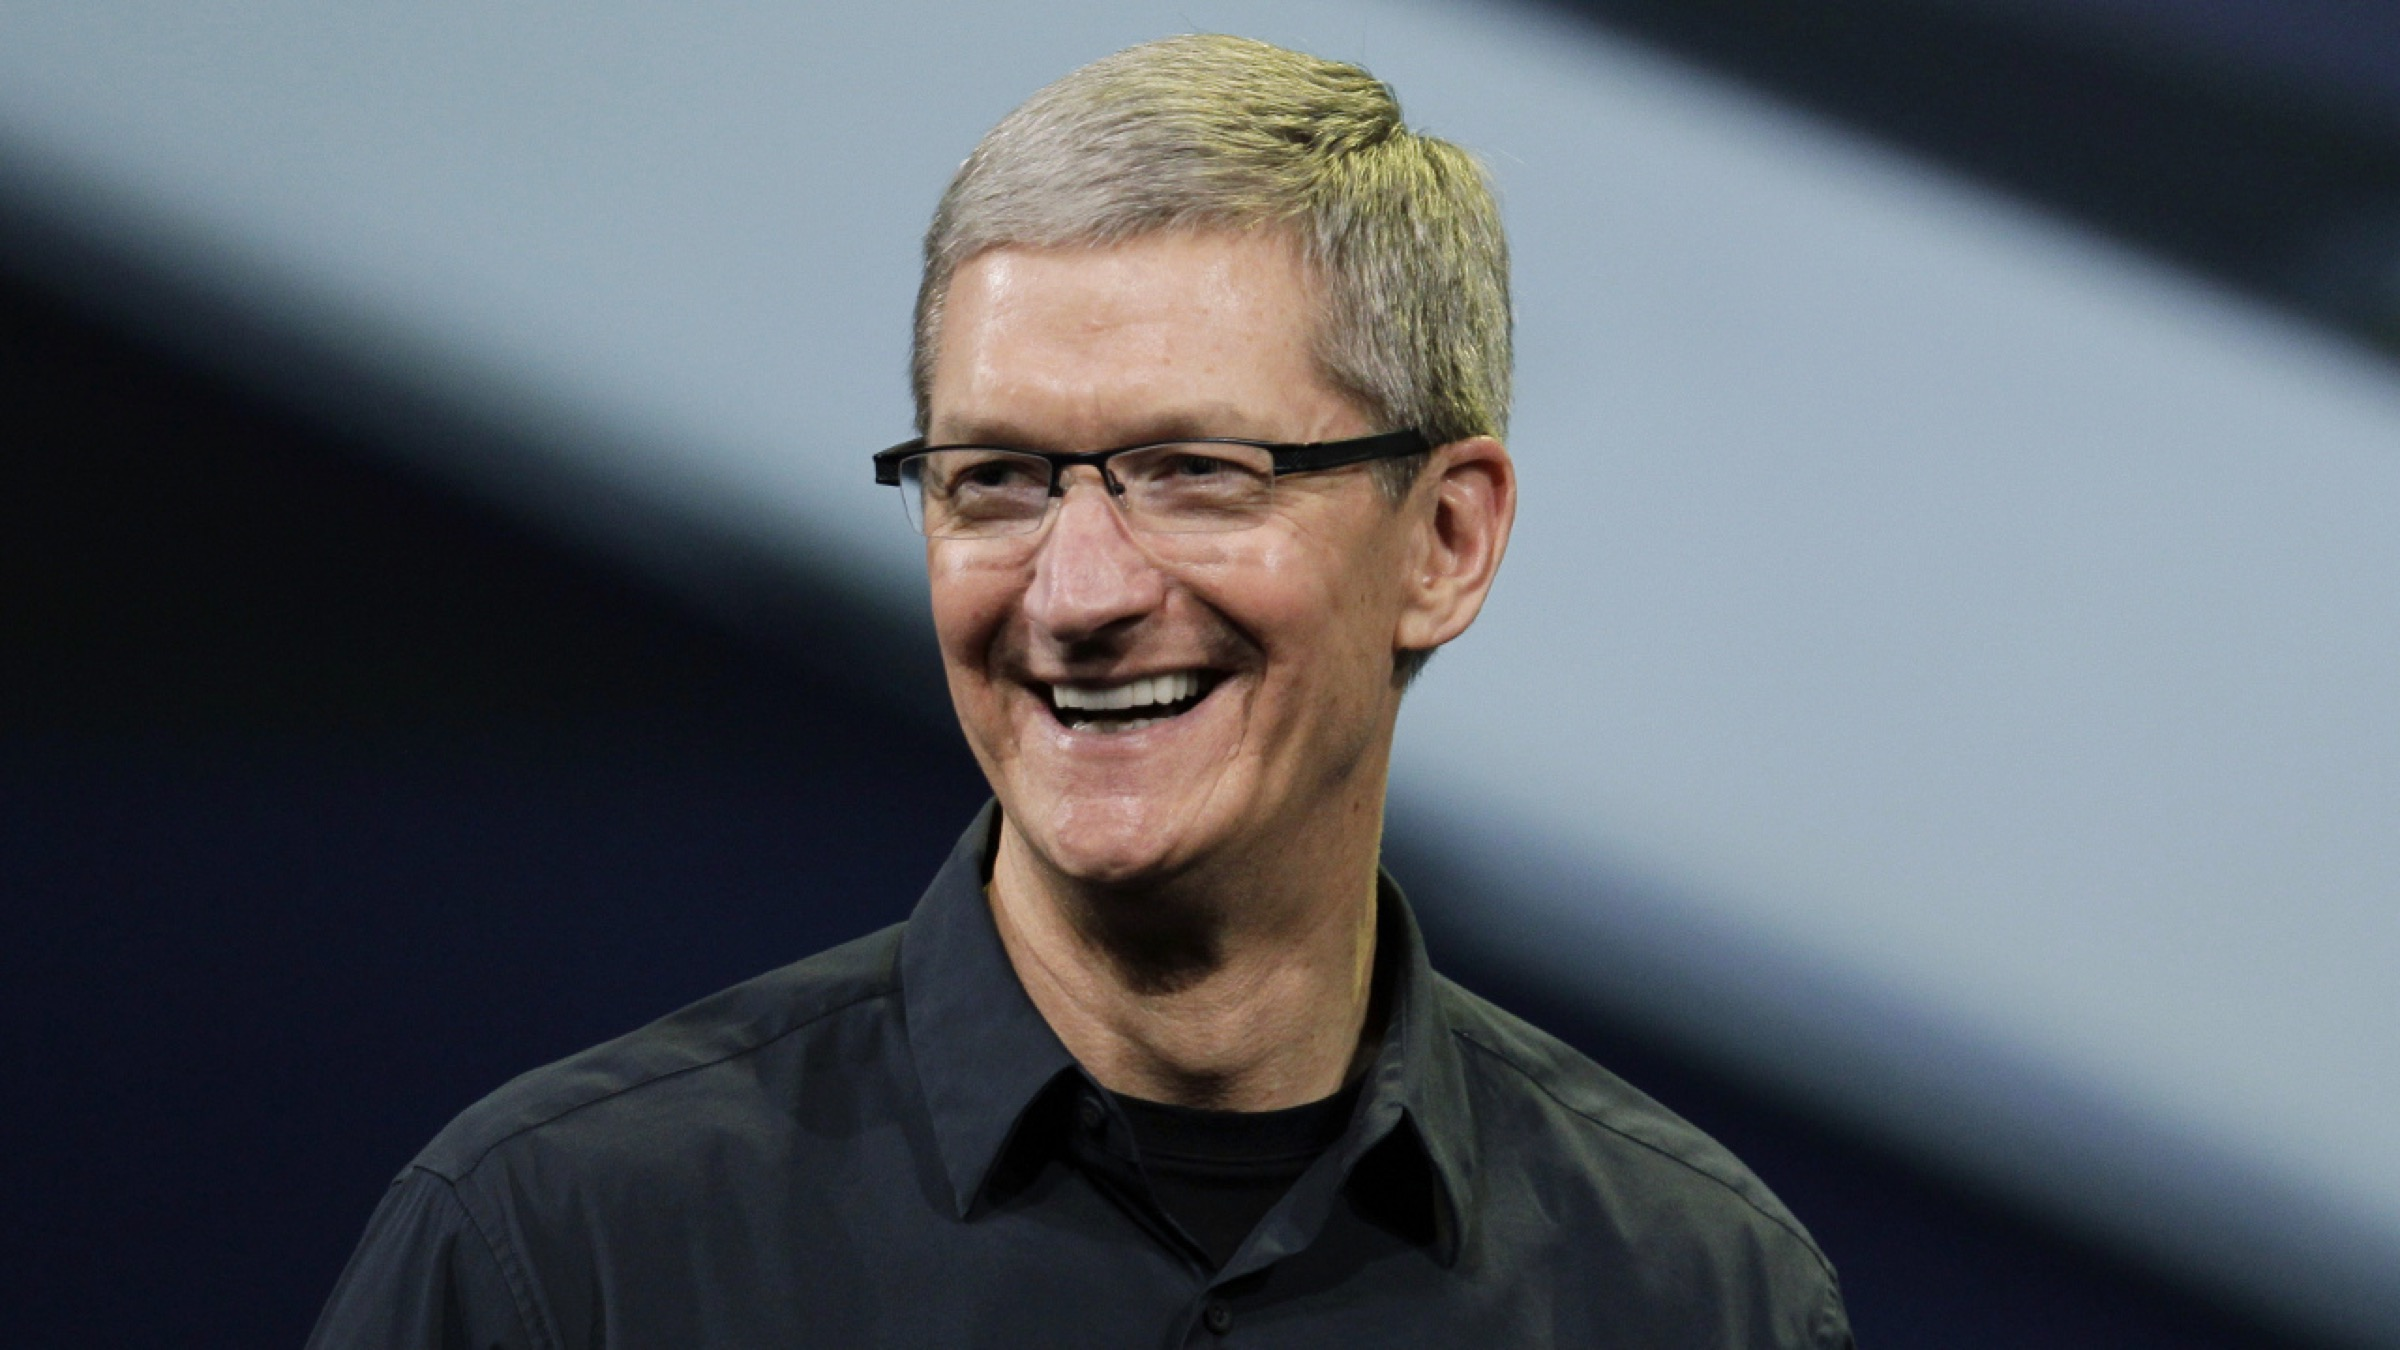 Tim Cook features in Time's annual list of '100 most influential people'